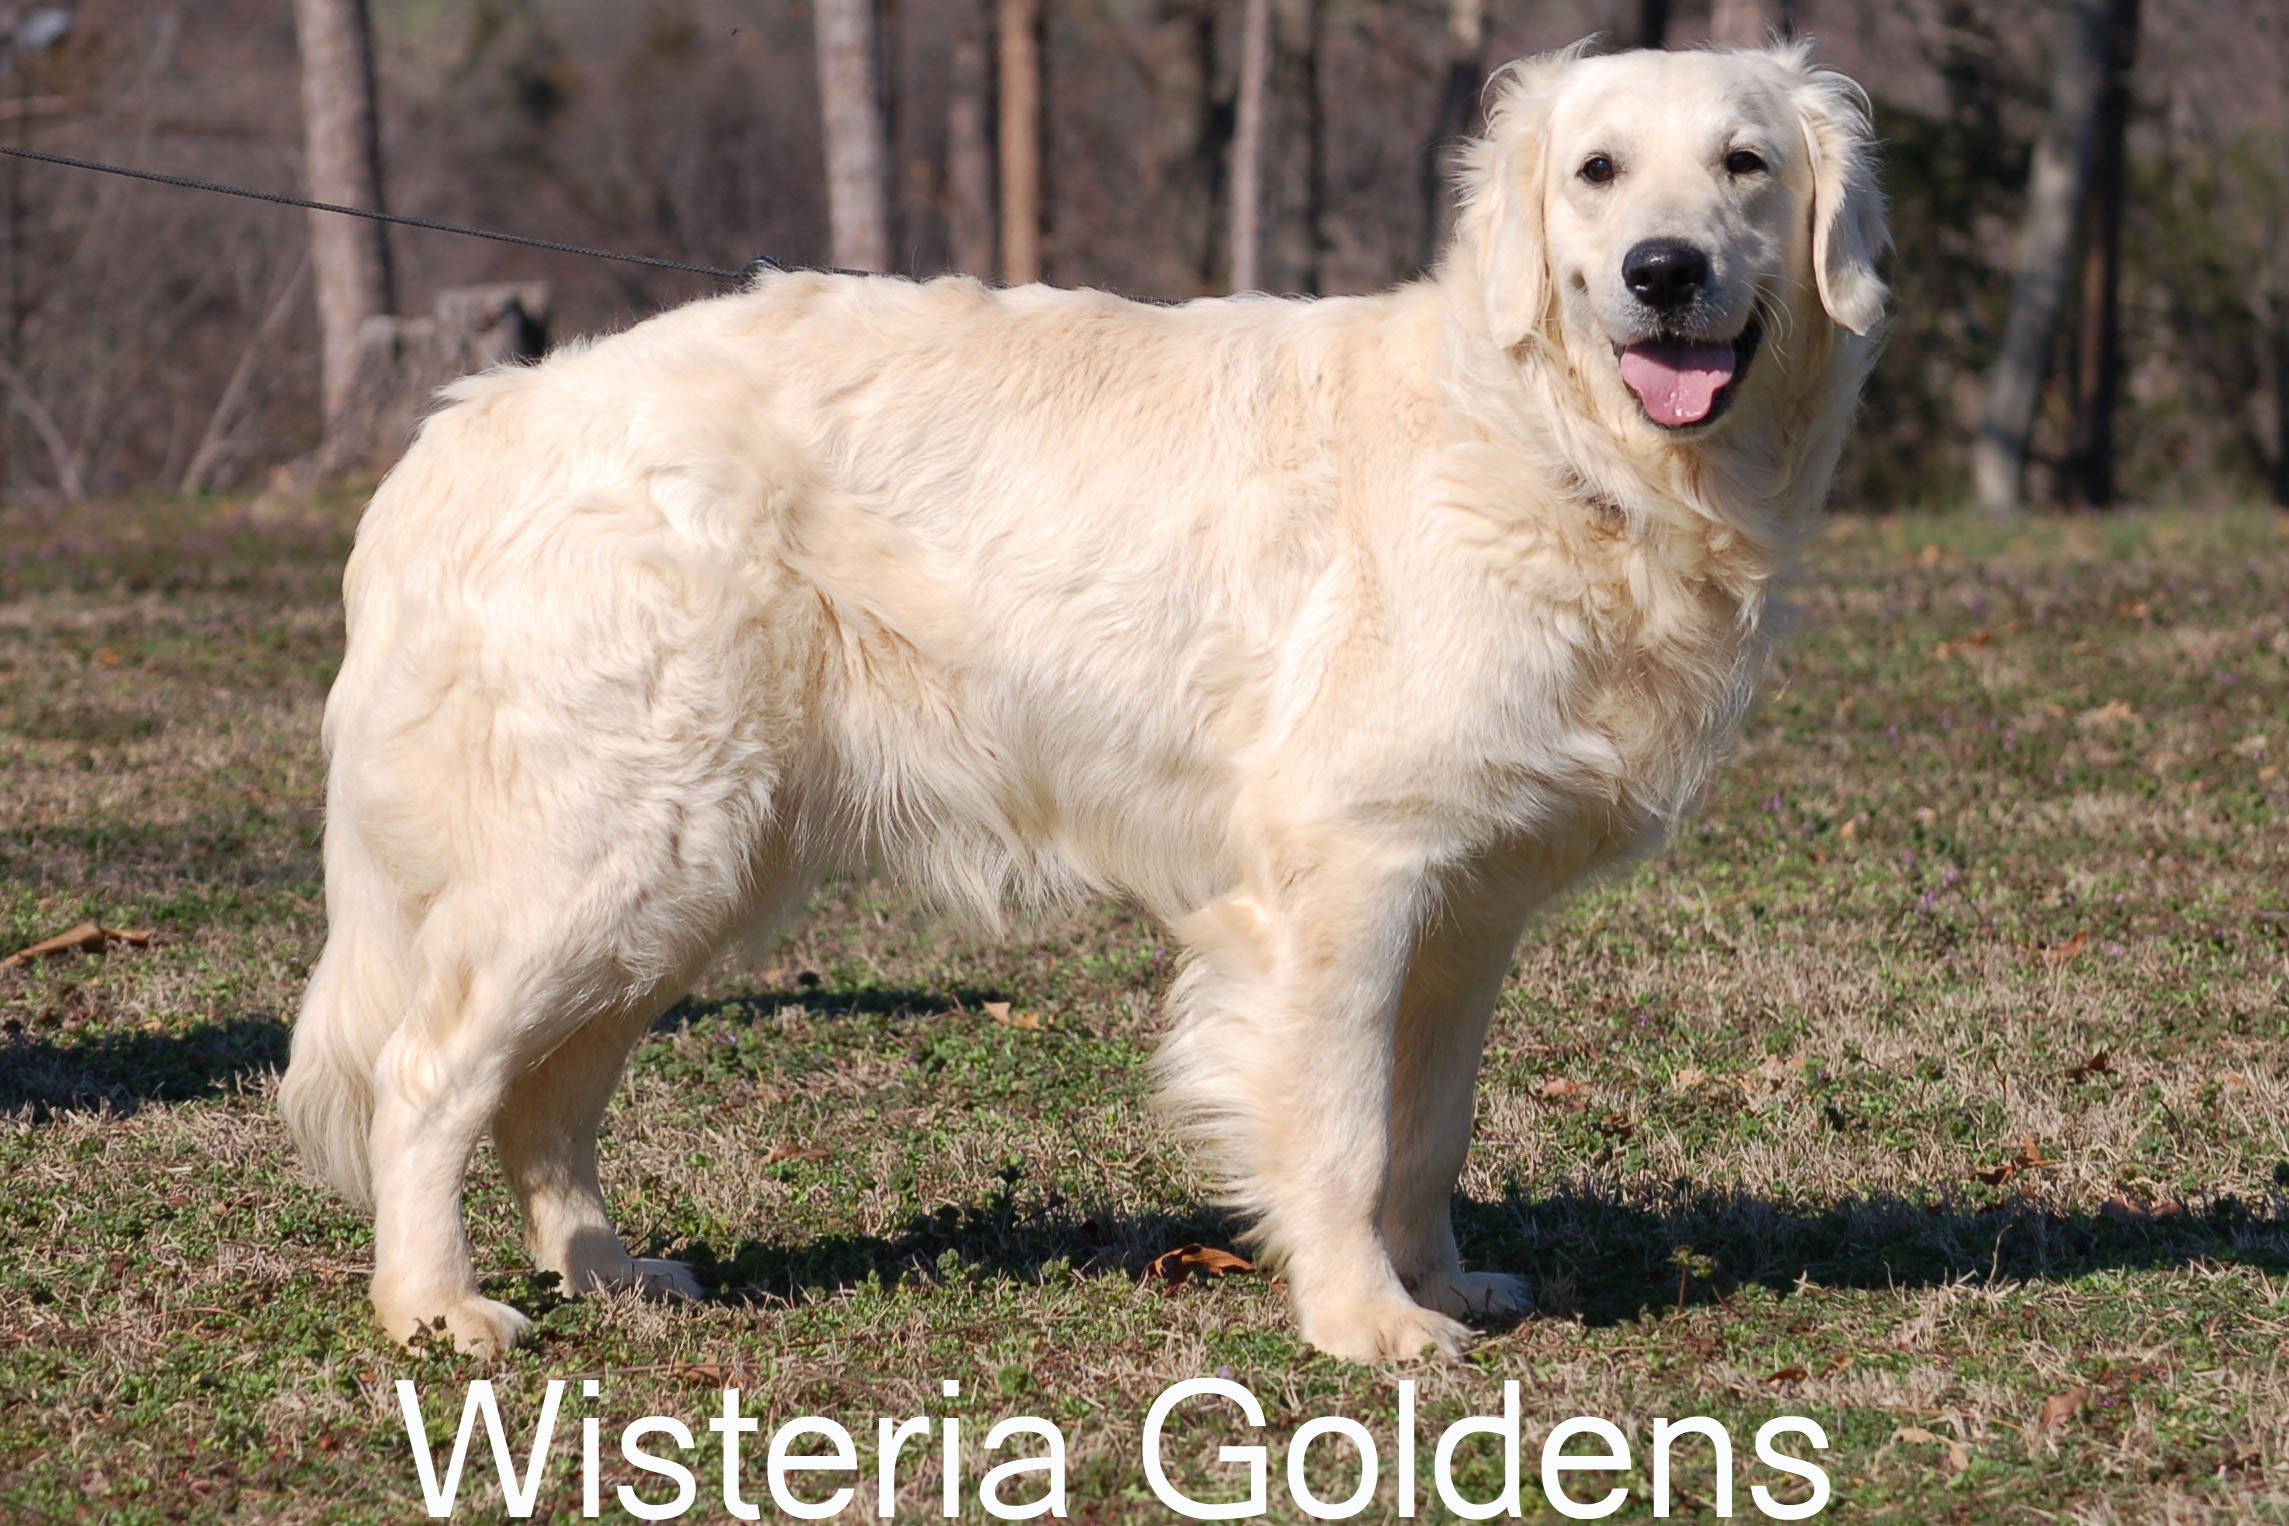 Tru_0523-Tru-full-english-cream-golden-retriever-wisteria-goldens.JPG